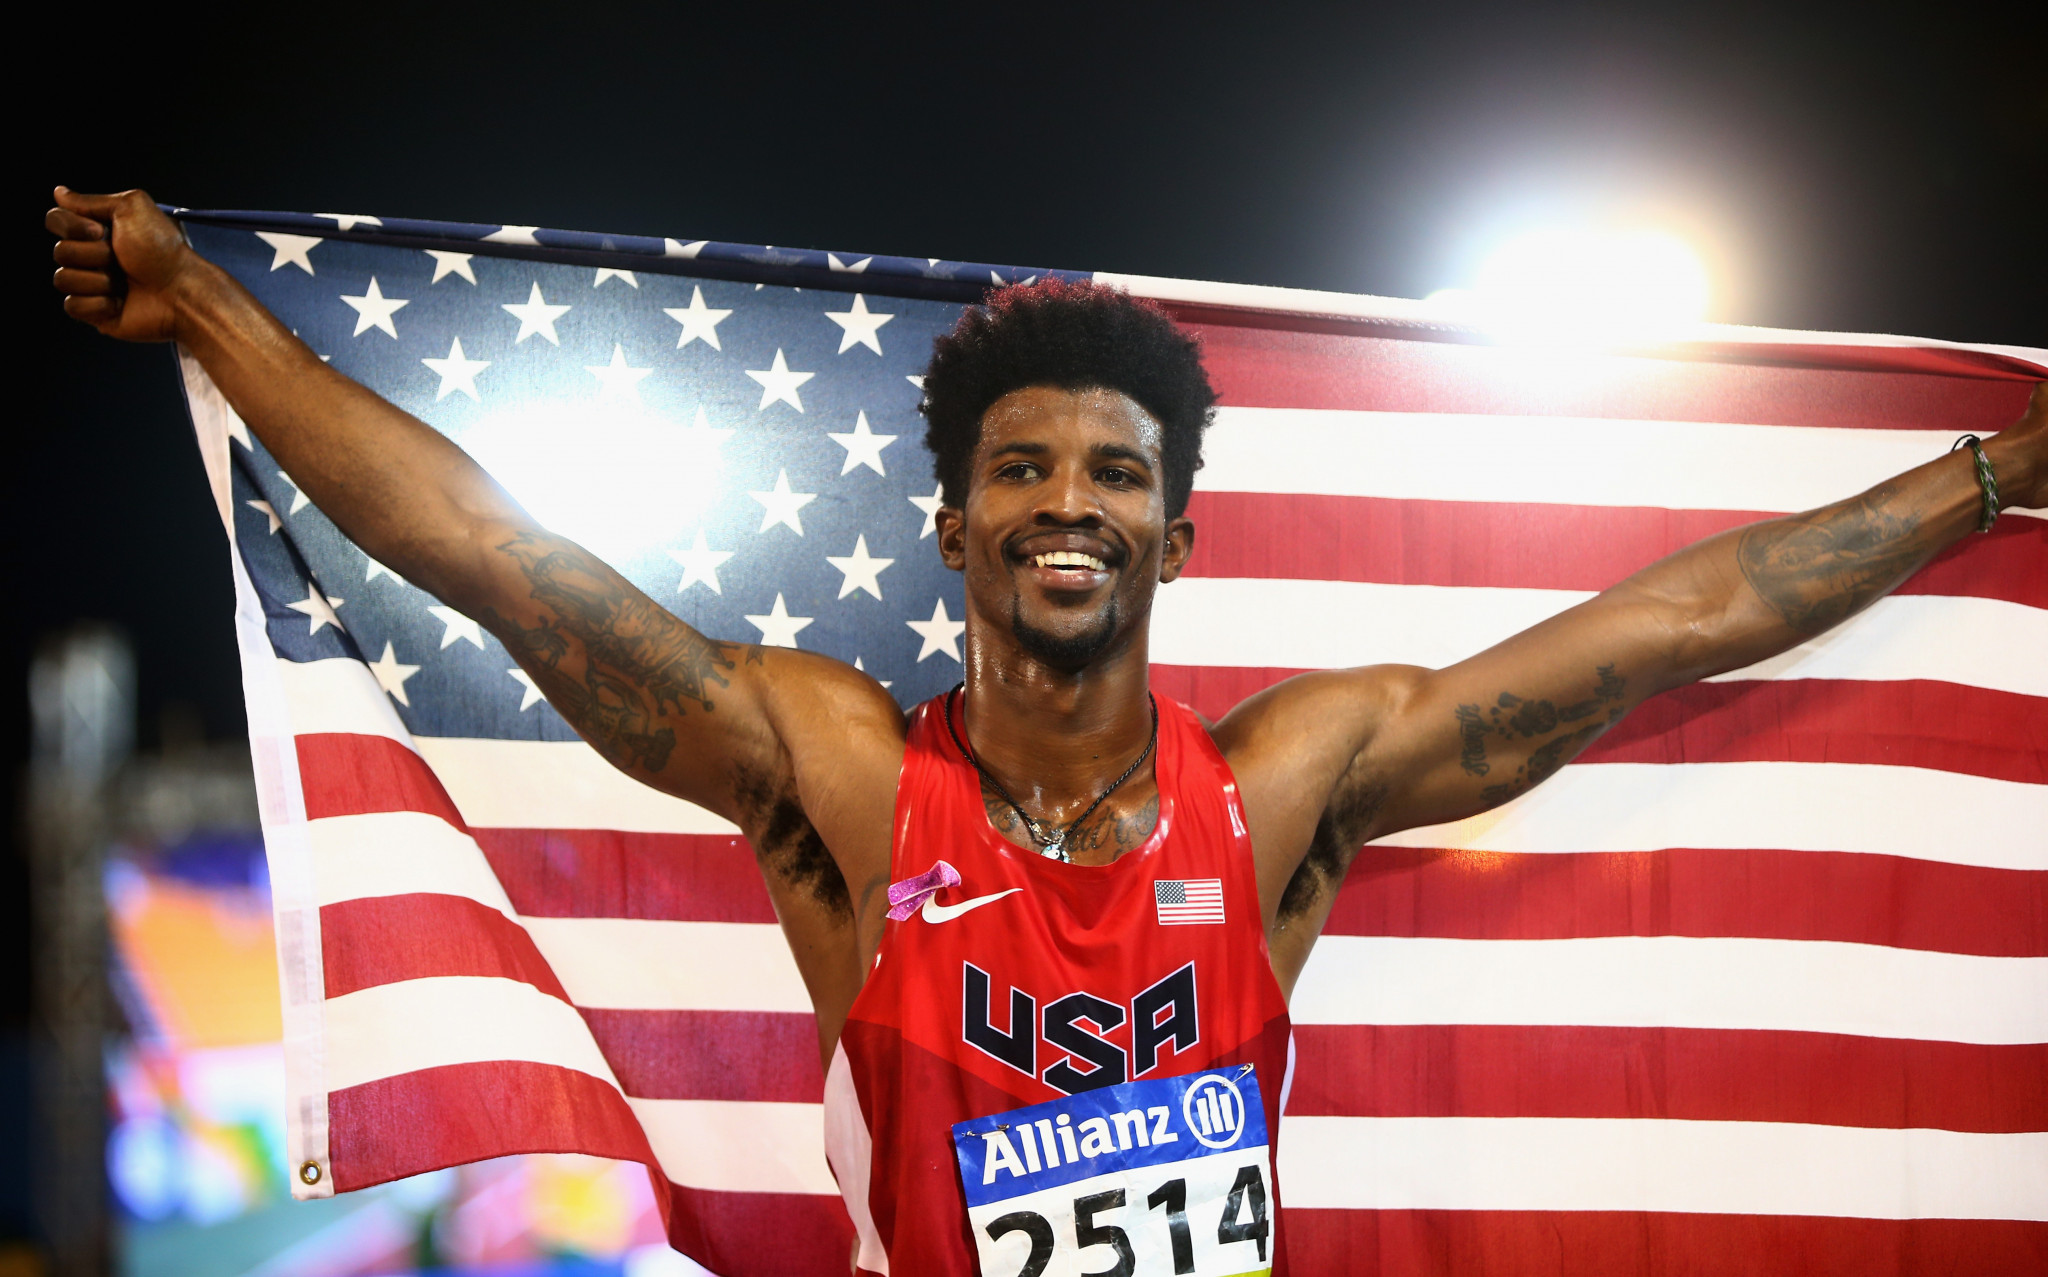 United States Richard Browne after breaking the T44 100m record ©Getty Images